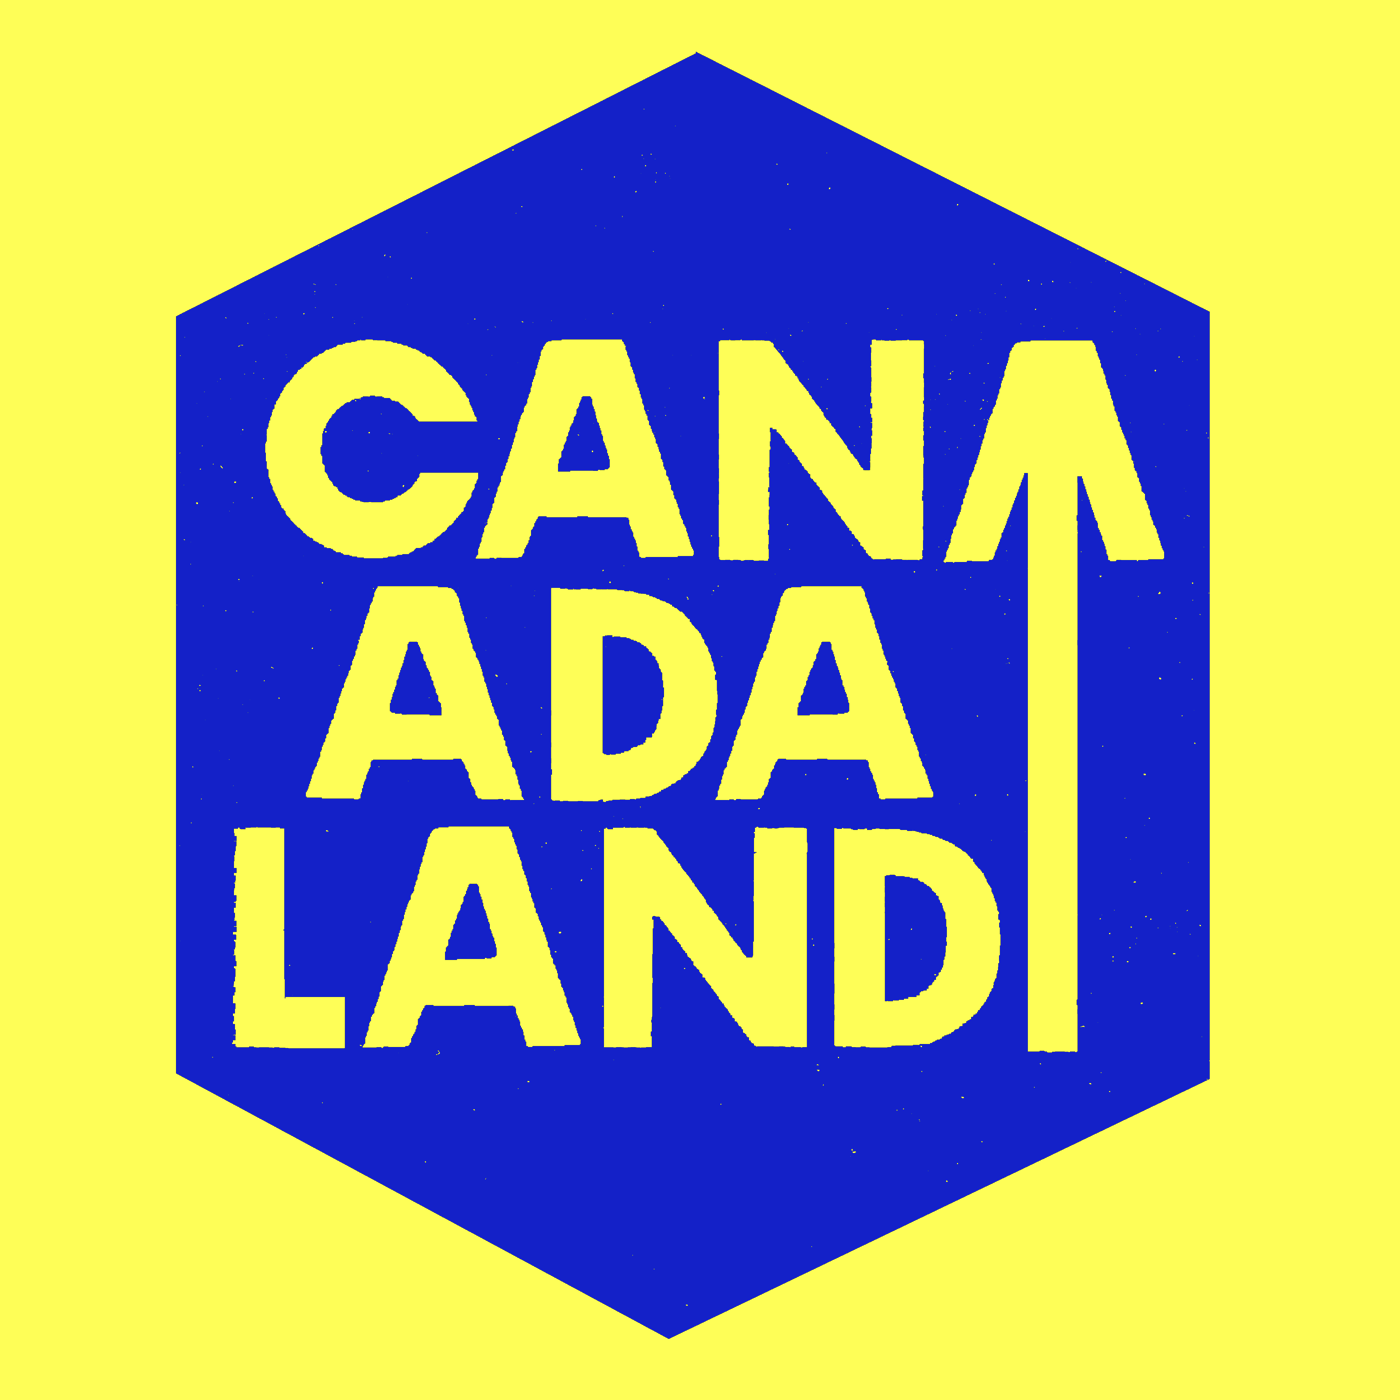 cl-logo-49d2eedb1c41d9348d97c04b515dc0d05de06271c424ea11c6bec43f2bd24a48.png